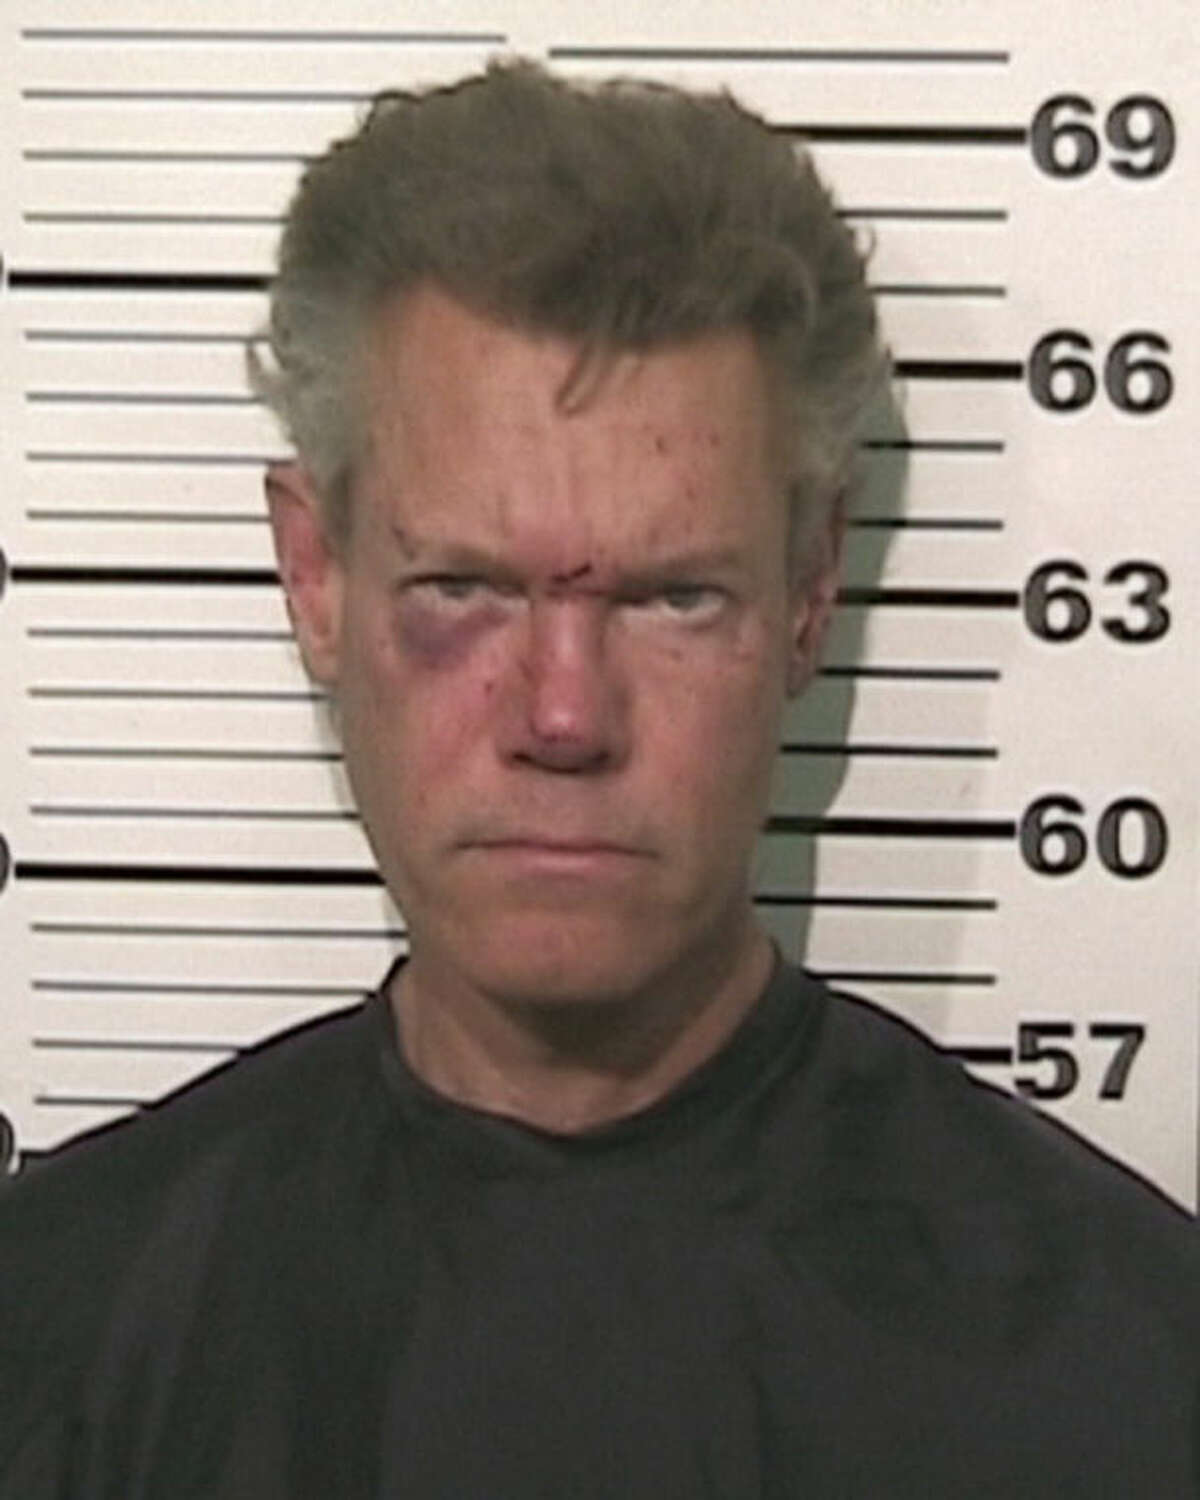 FILE - This file photo provided by the Grayson County, Texas, Sheriff?'s Office shows Country singer Randy Travis. A prosecutor says the country music star is expected to enter a guilty plea in a drunken-driving case in North Texas. (AP Photo/Grayson County Sheriff's Office)